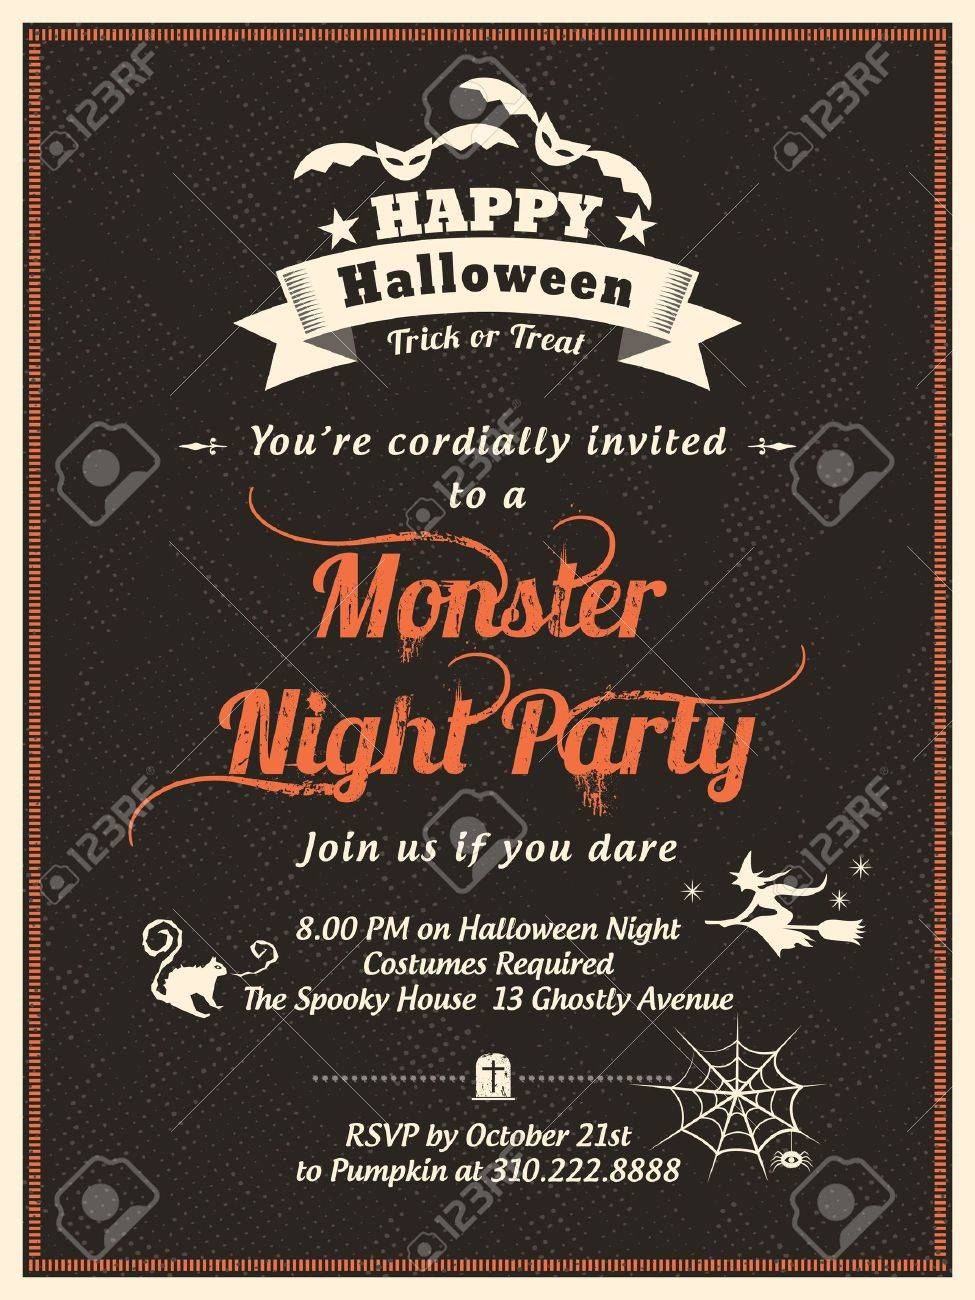 halloween party invitations templates - Gidiye.redformapolitica.co